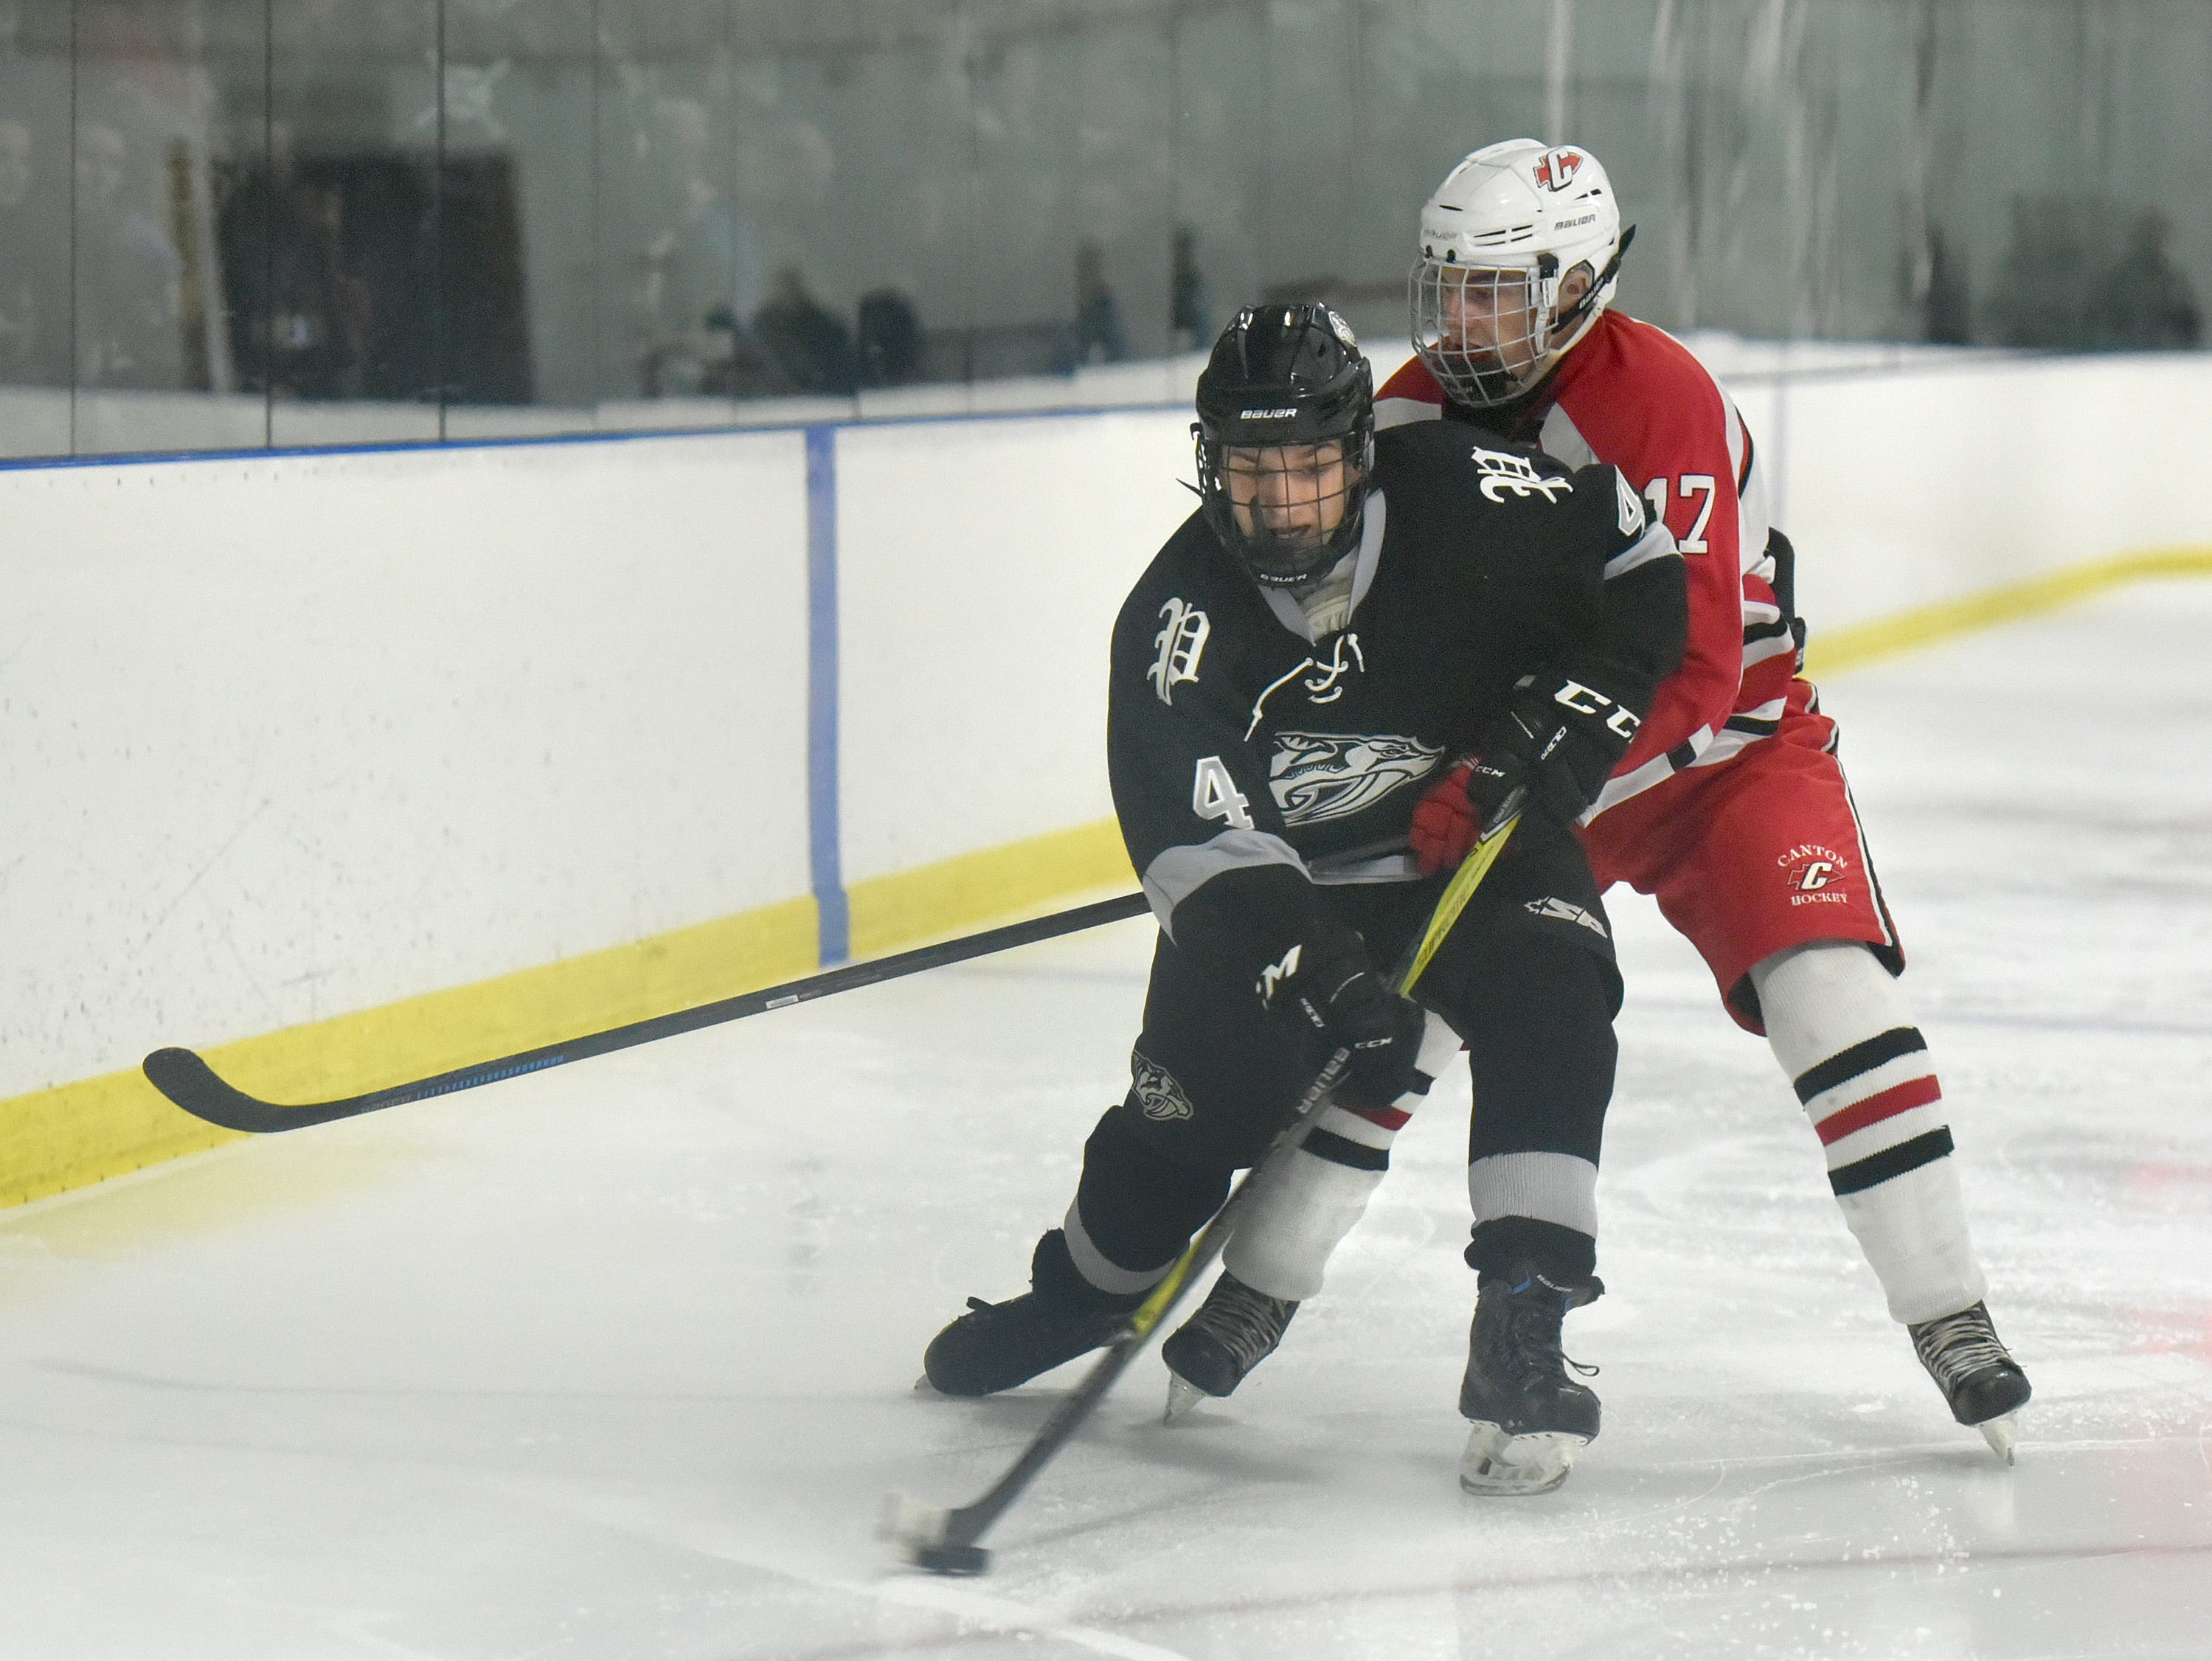 Wildcat Brendan Matey (4) has the puck, with Chief Declan O'Hare on his tail.